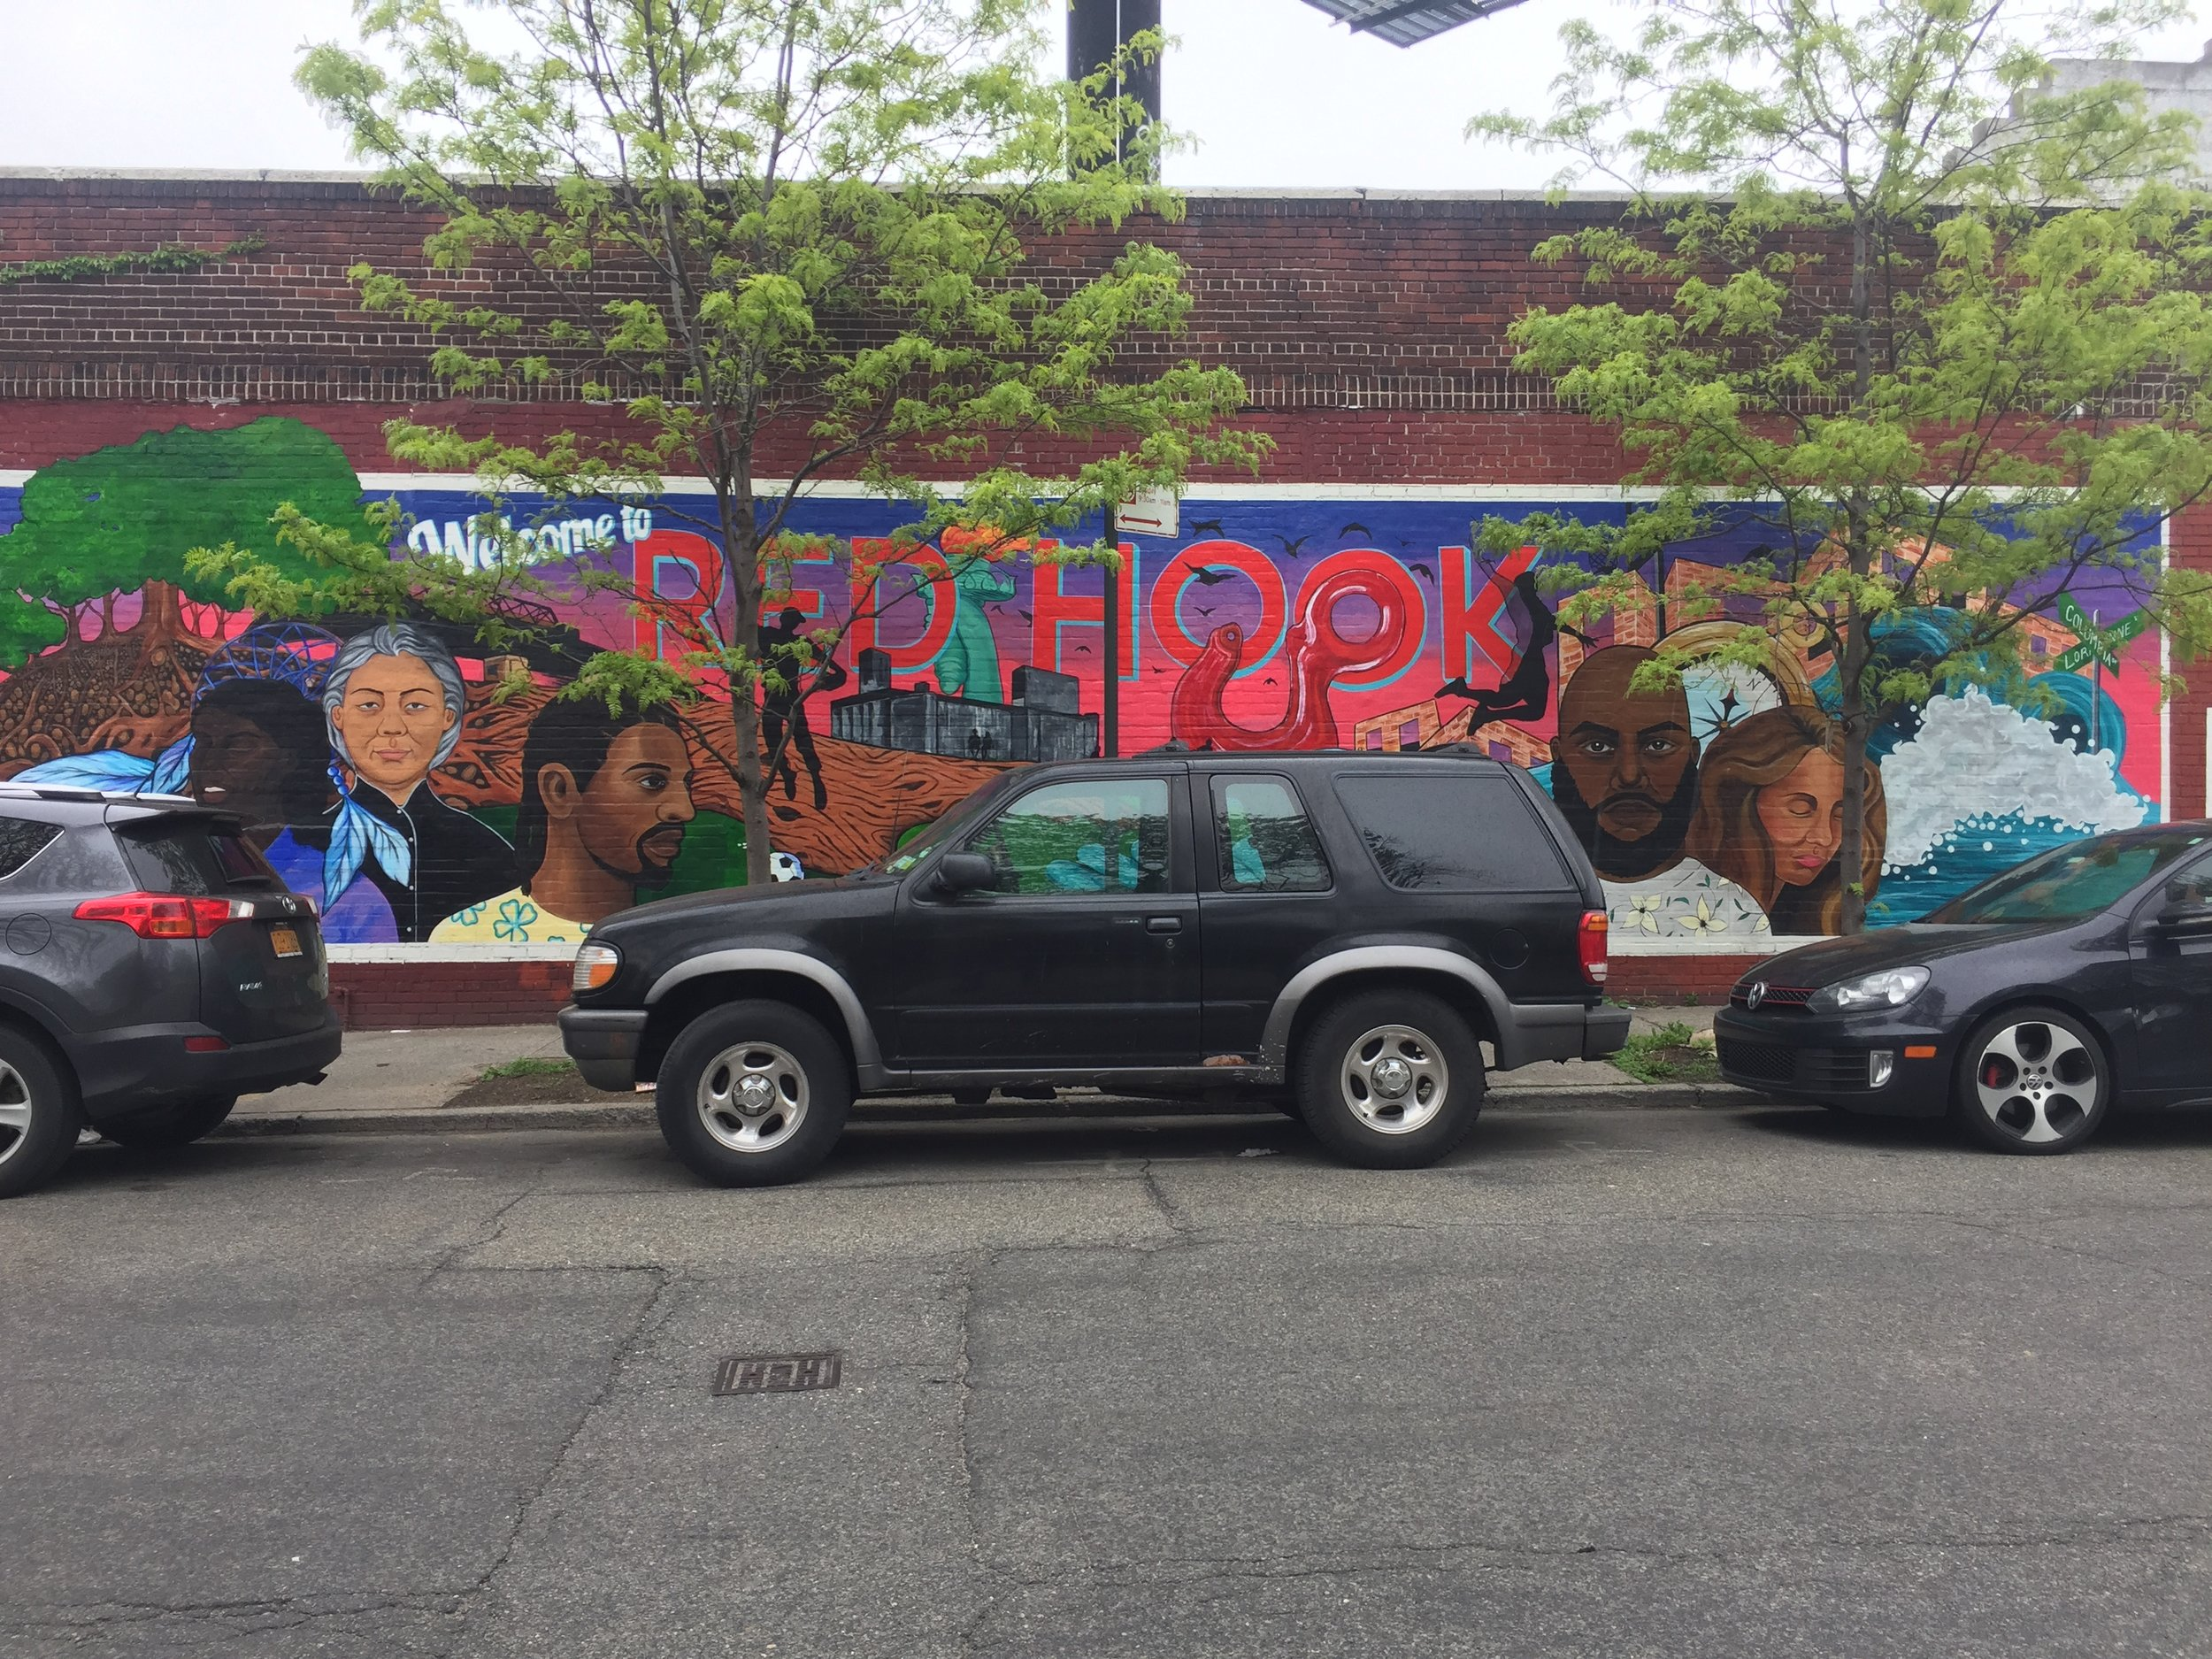 Mural opposite the New York Public Library in Red Hook